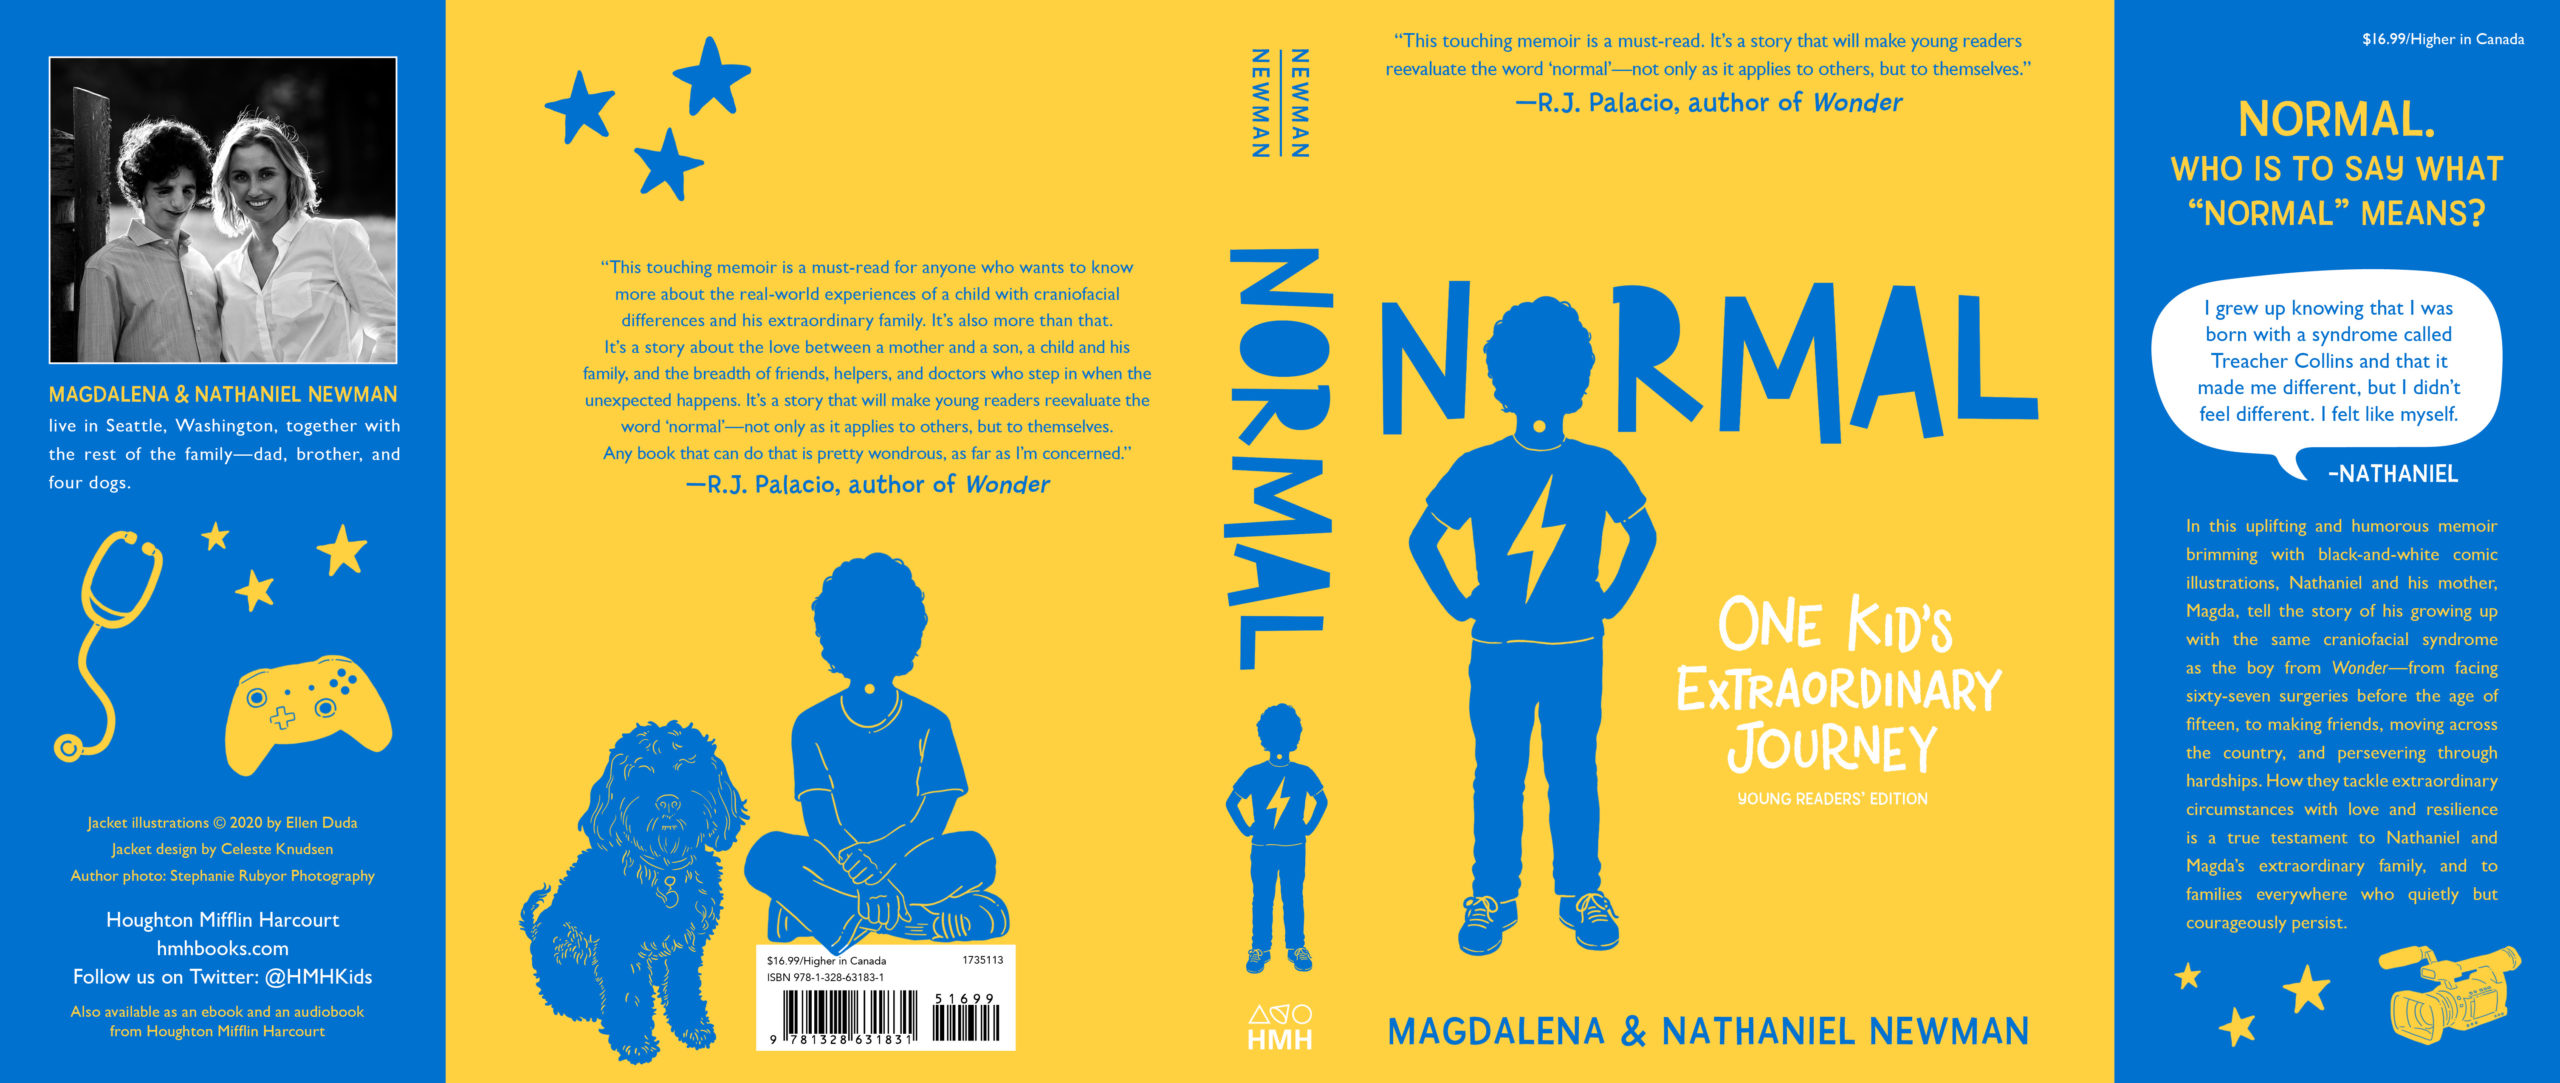 Newman_NORMAL-YOUNG-READERS-EDITION_jkt_3p